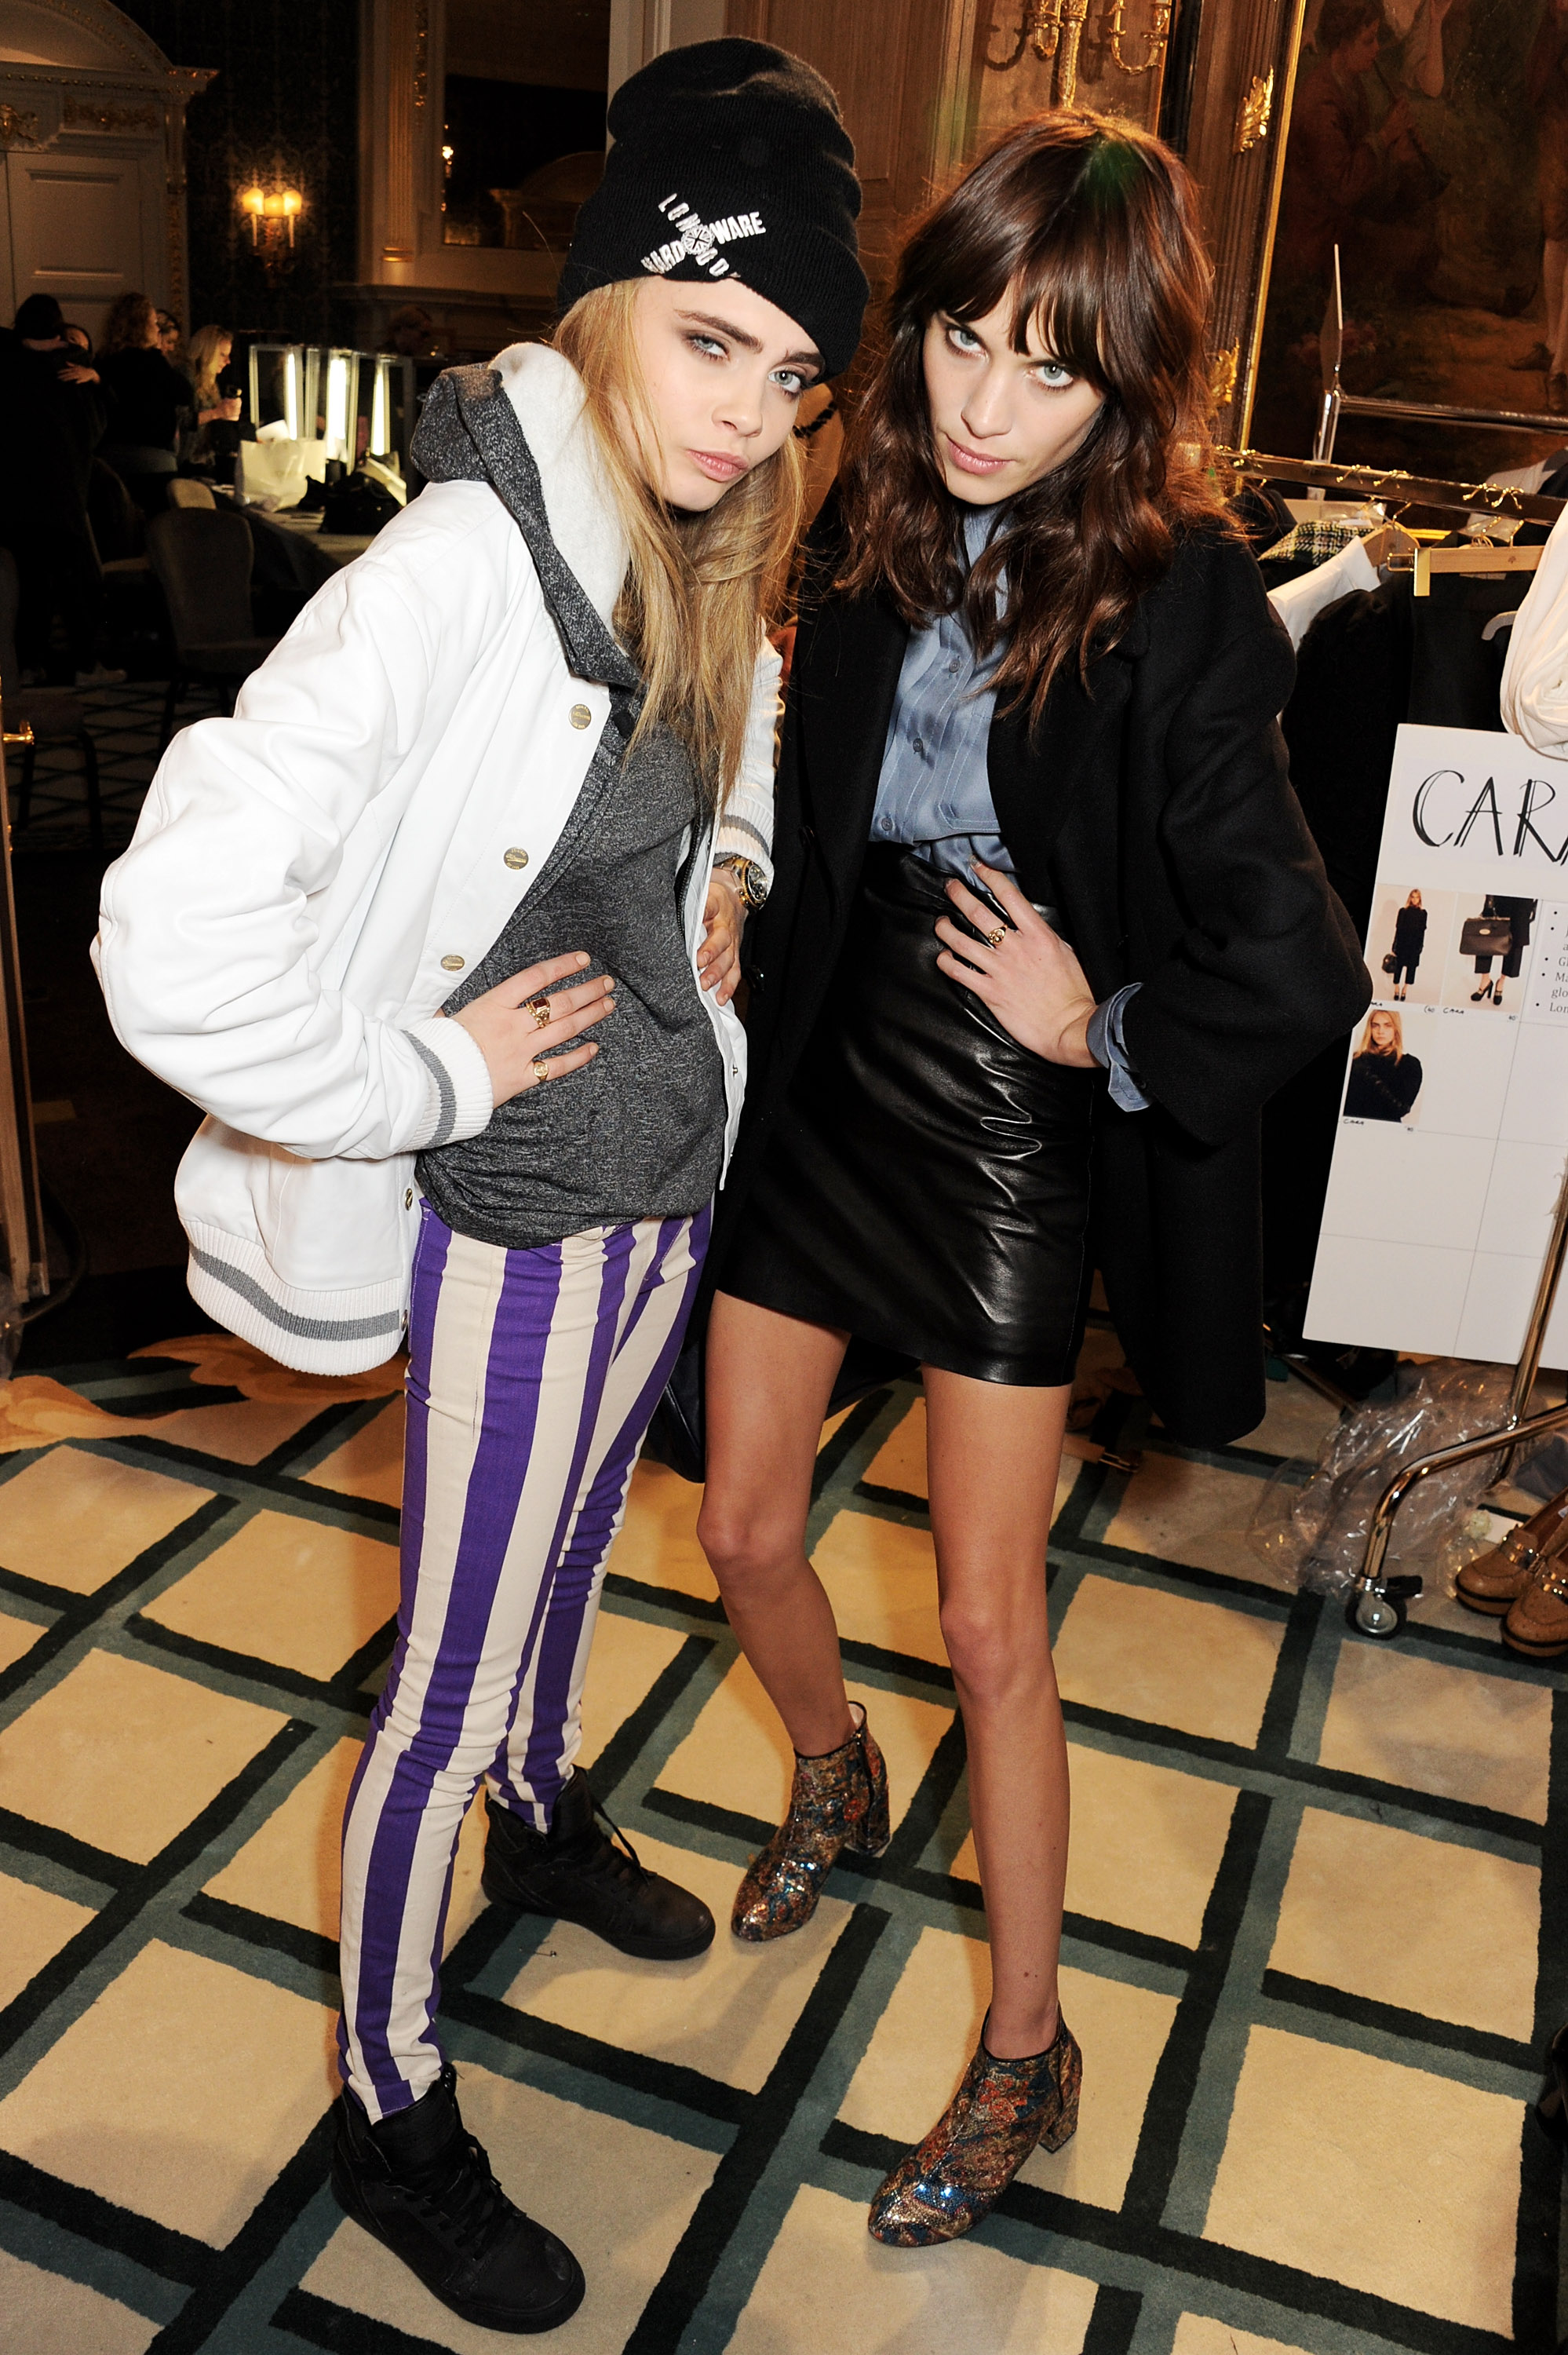 Cara Delevingne and Alexa Chung backstage at the Mulberry Fall 2013 show in London.